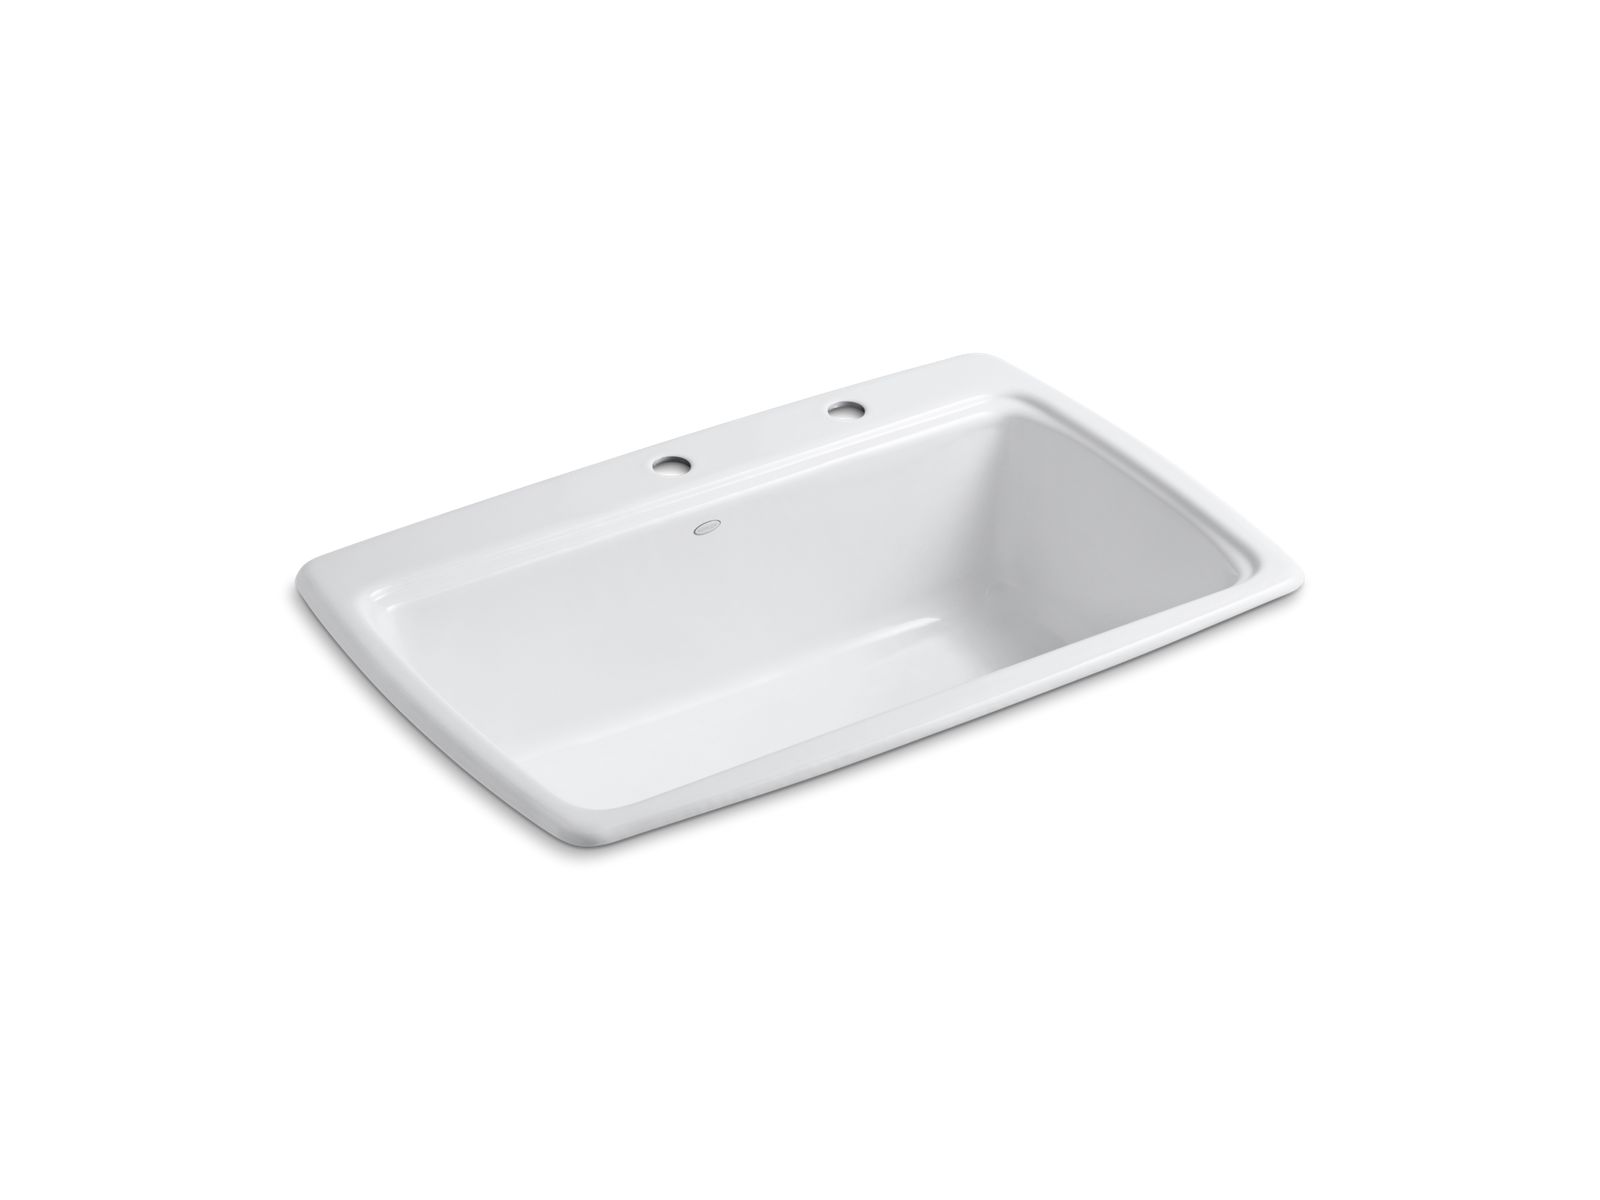 Cape Dory Top Mount Kitchen Sinks With Two Faucet Holes   K 5863 2   KOHLER